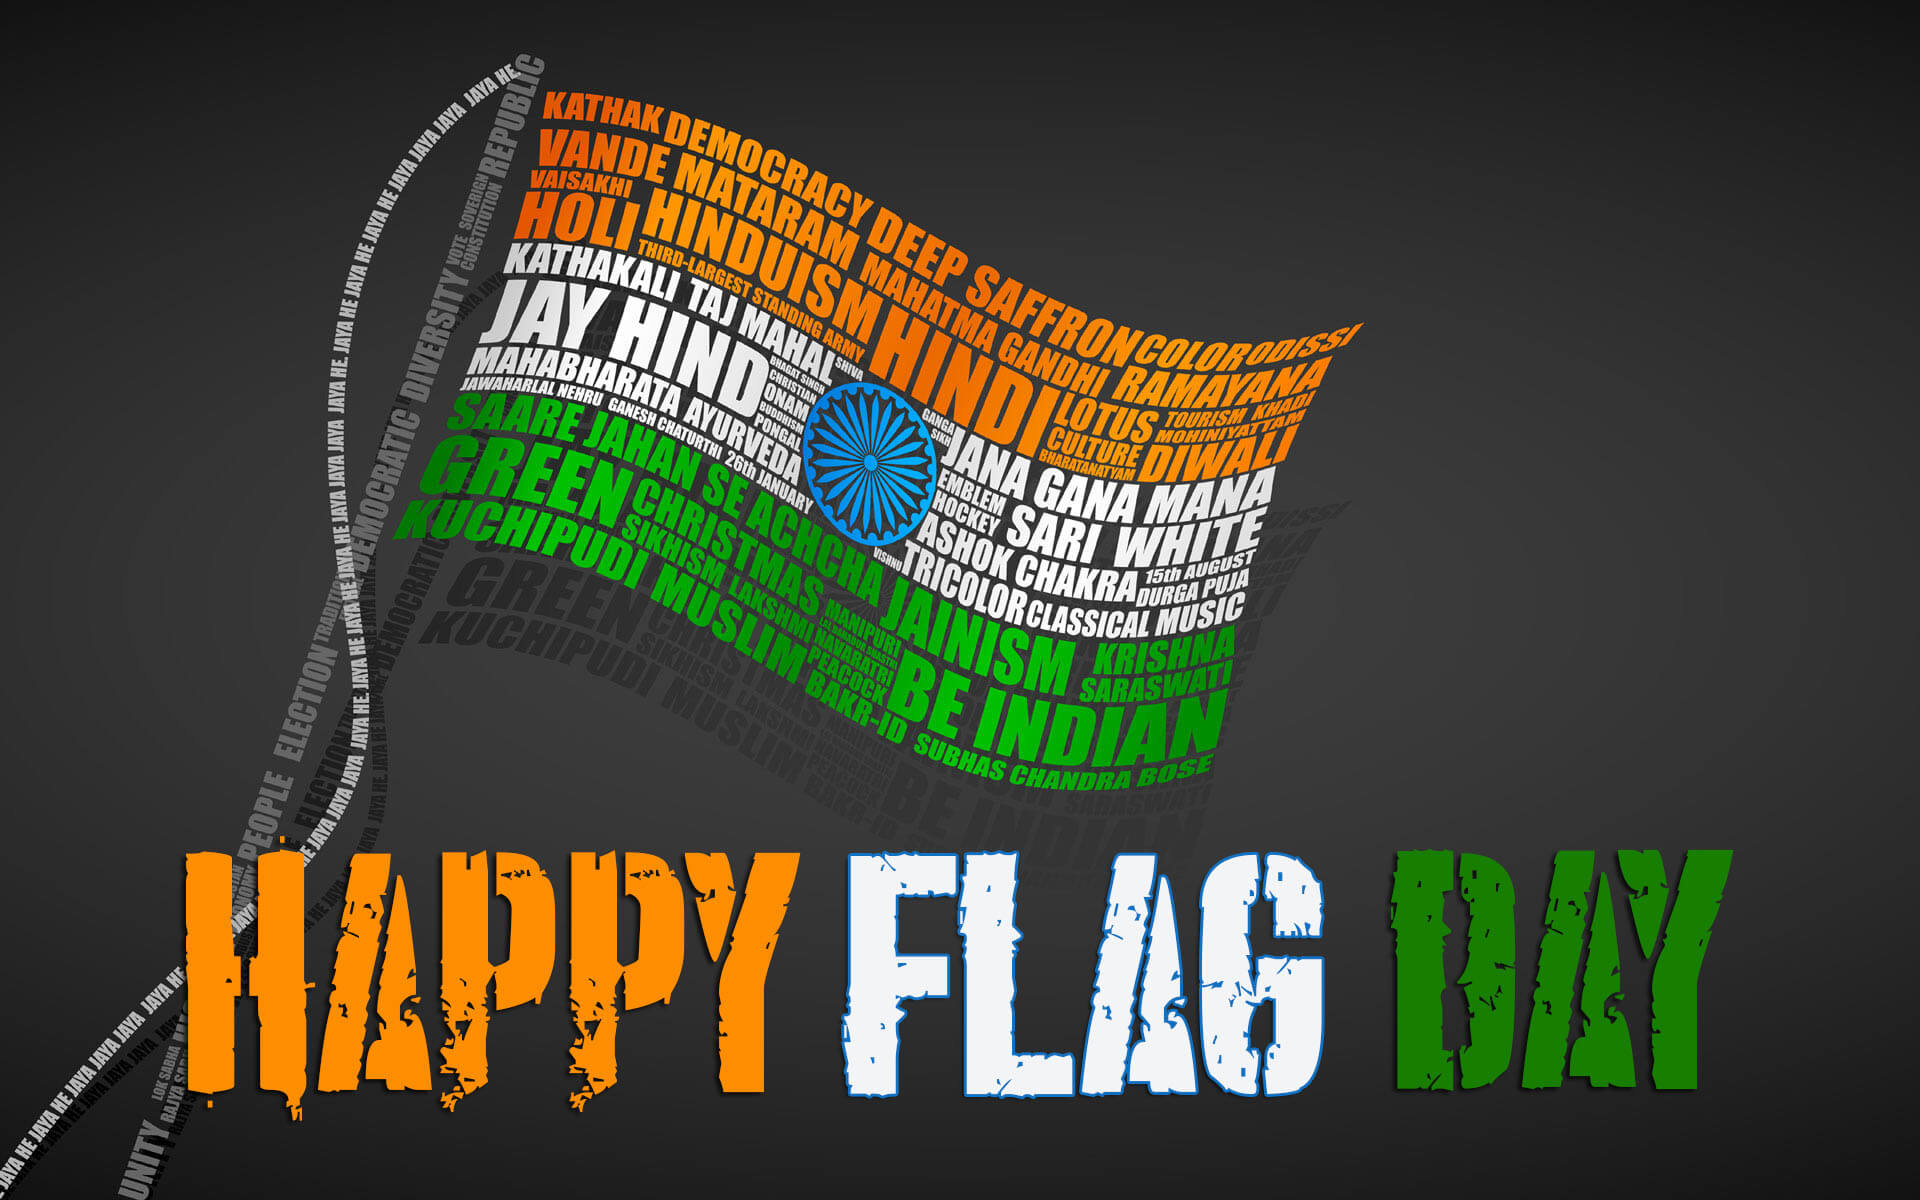 happy flag day india hd desktop wallpaper